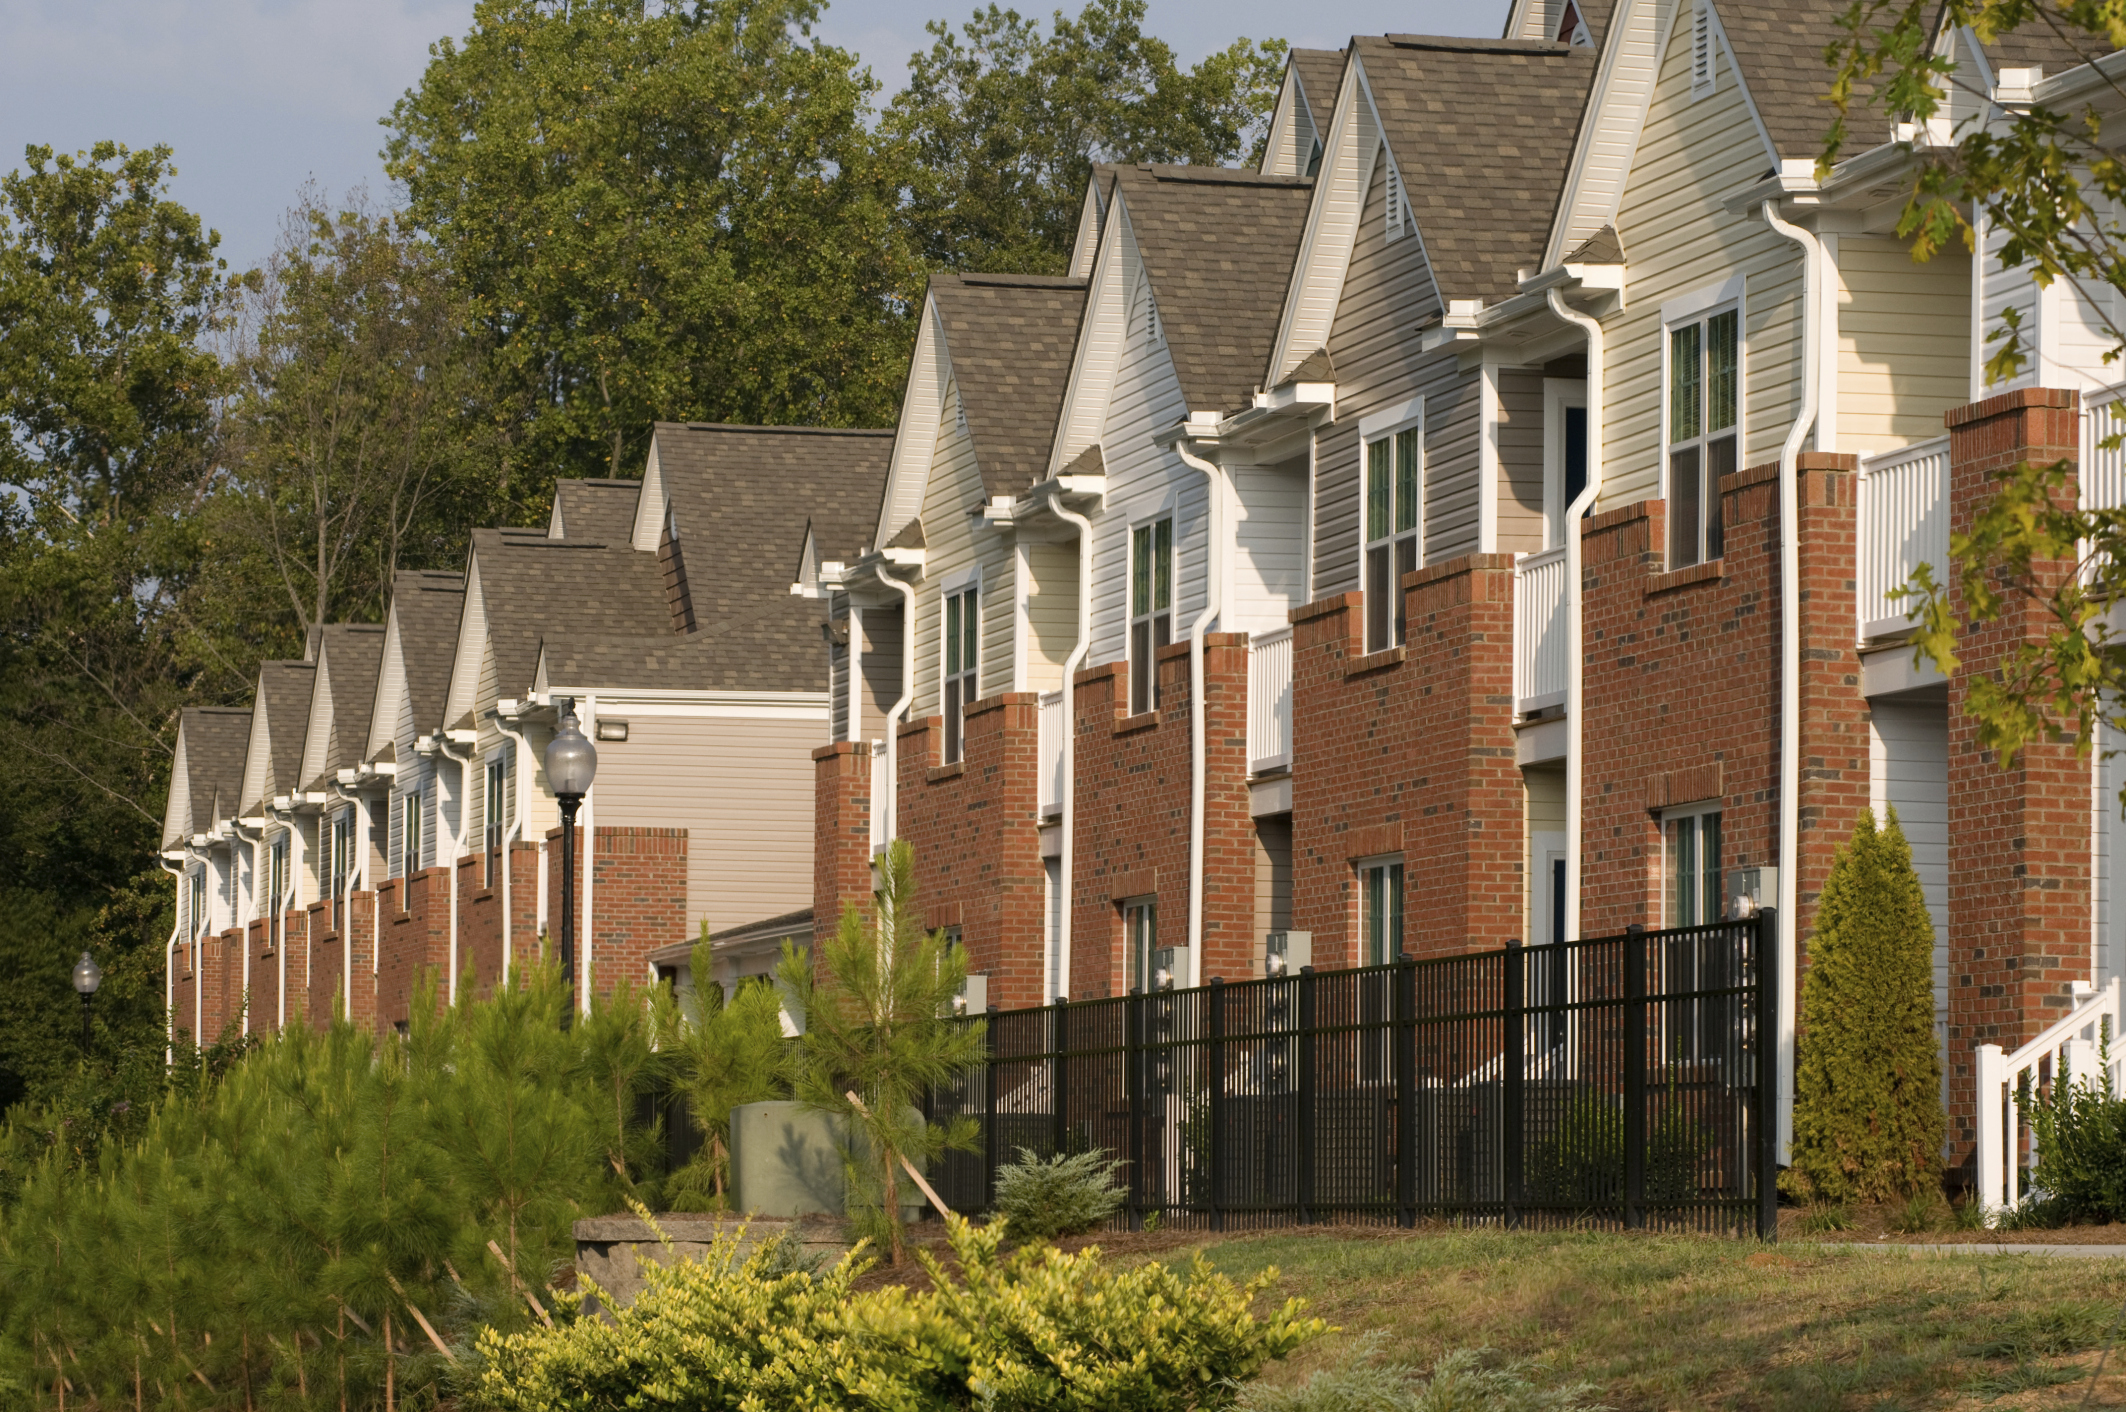 How to Apply for Section 8 or HUD in Another State